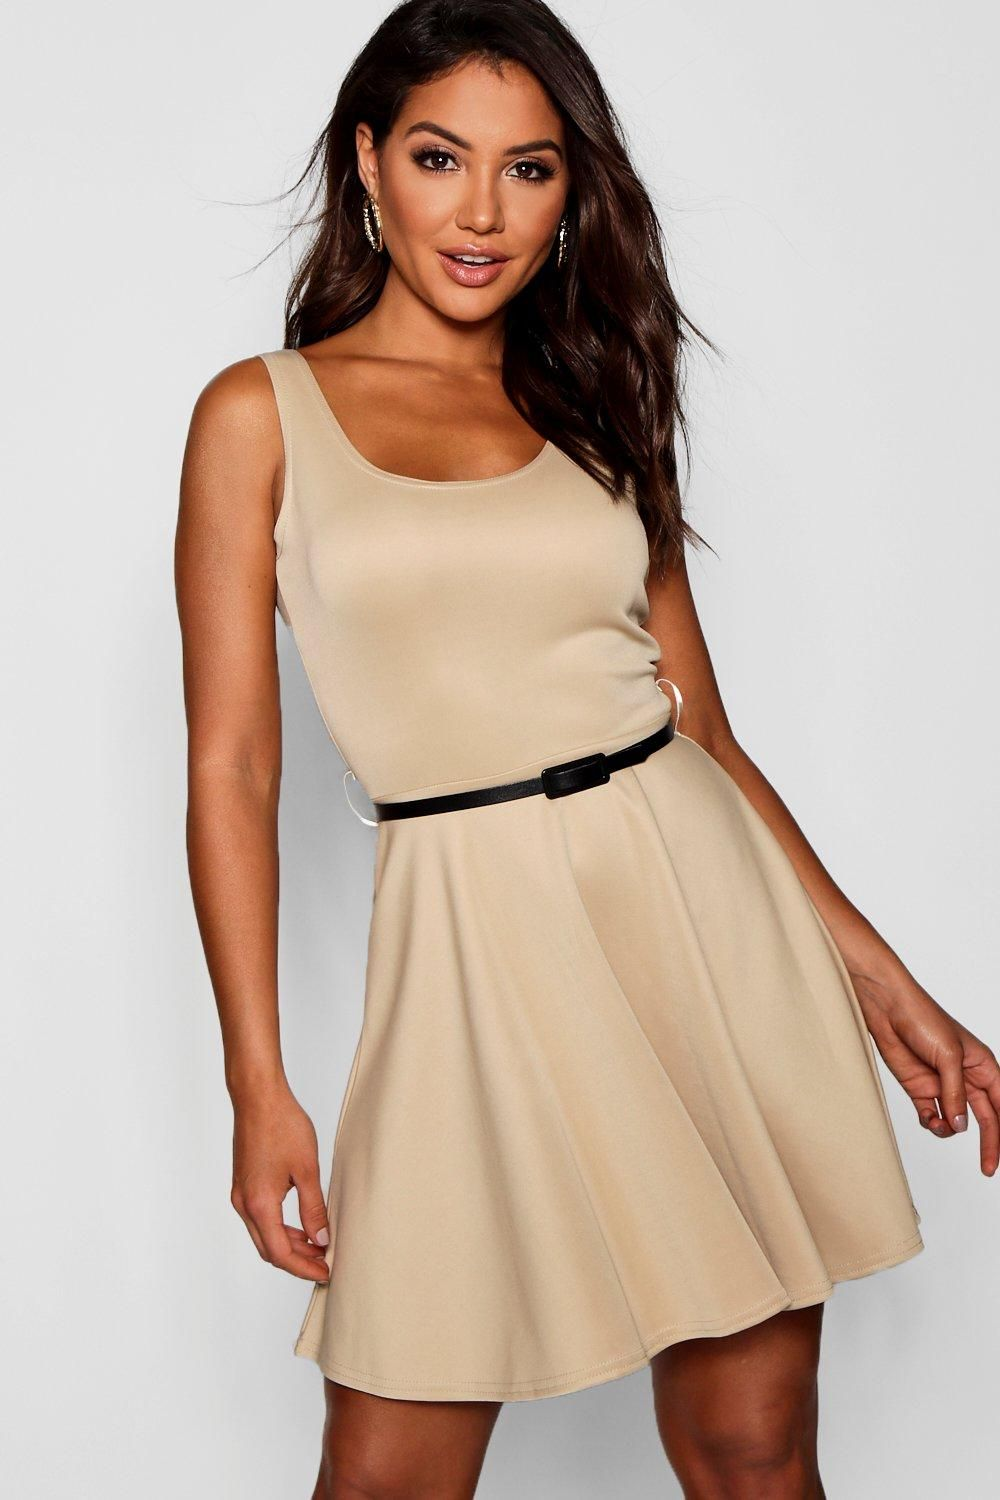 Scoop Neck Skater Dress | Pinterest